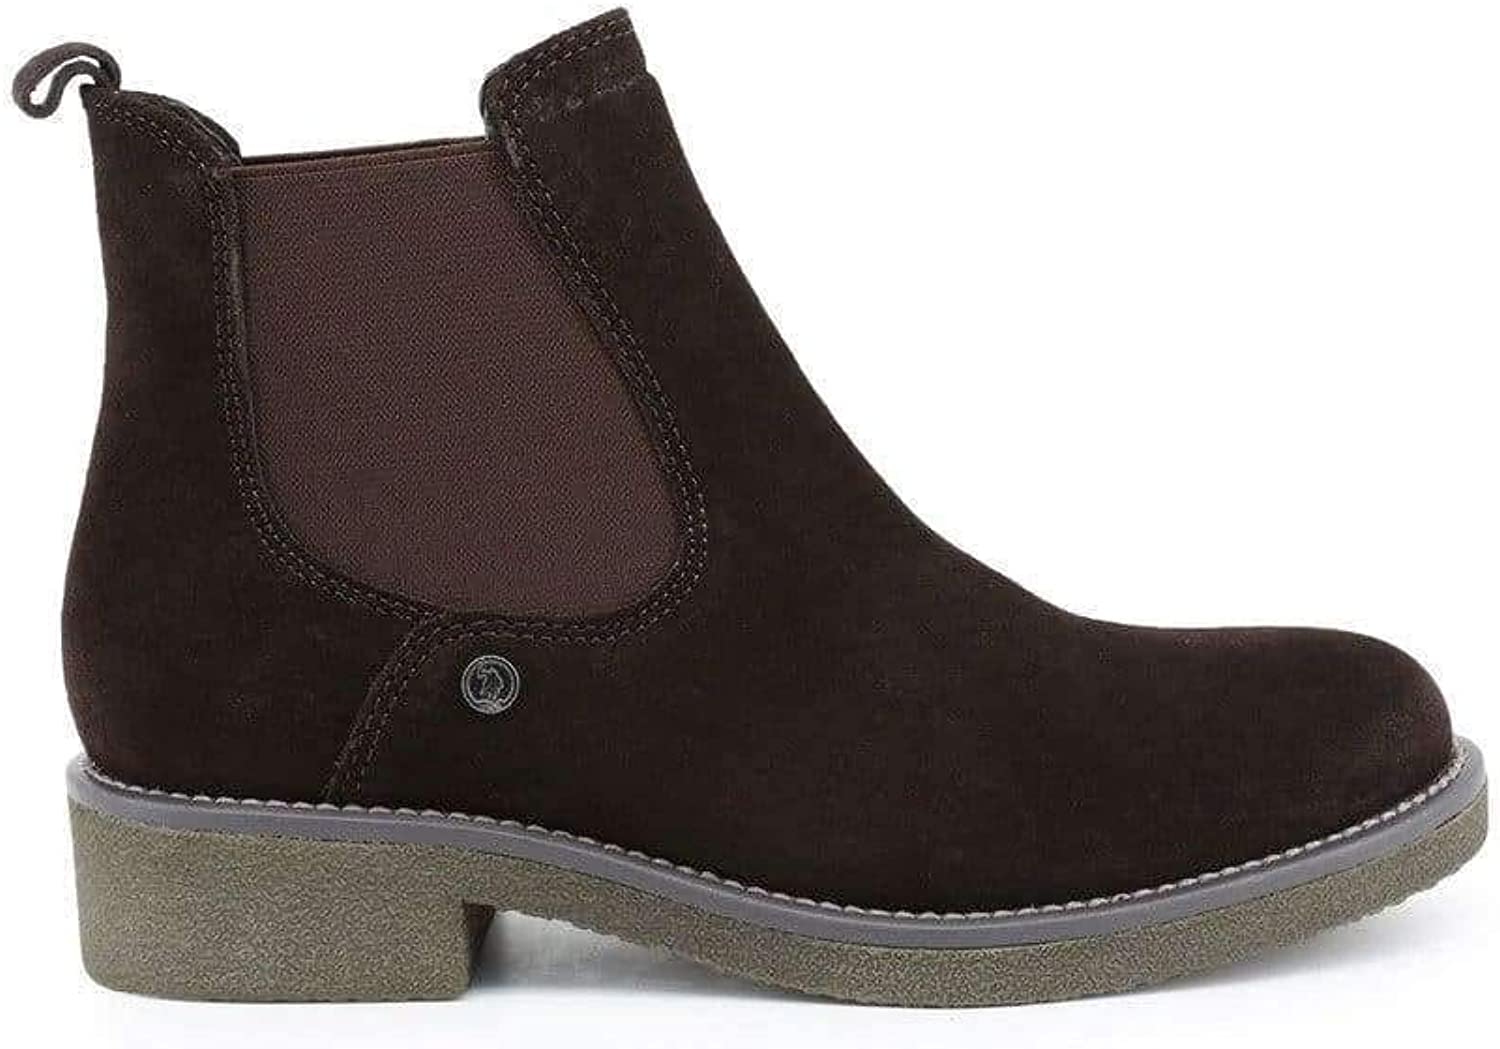 U.S. Polo Women's Suede Ankle Boots, VERVE4153W8_S1_DKBR